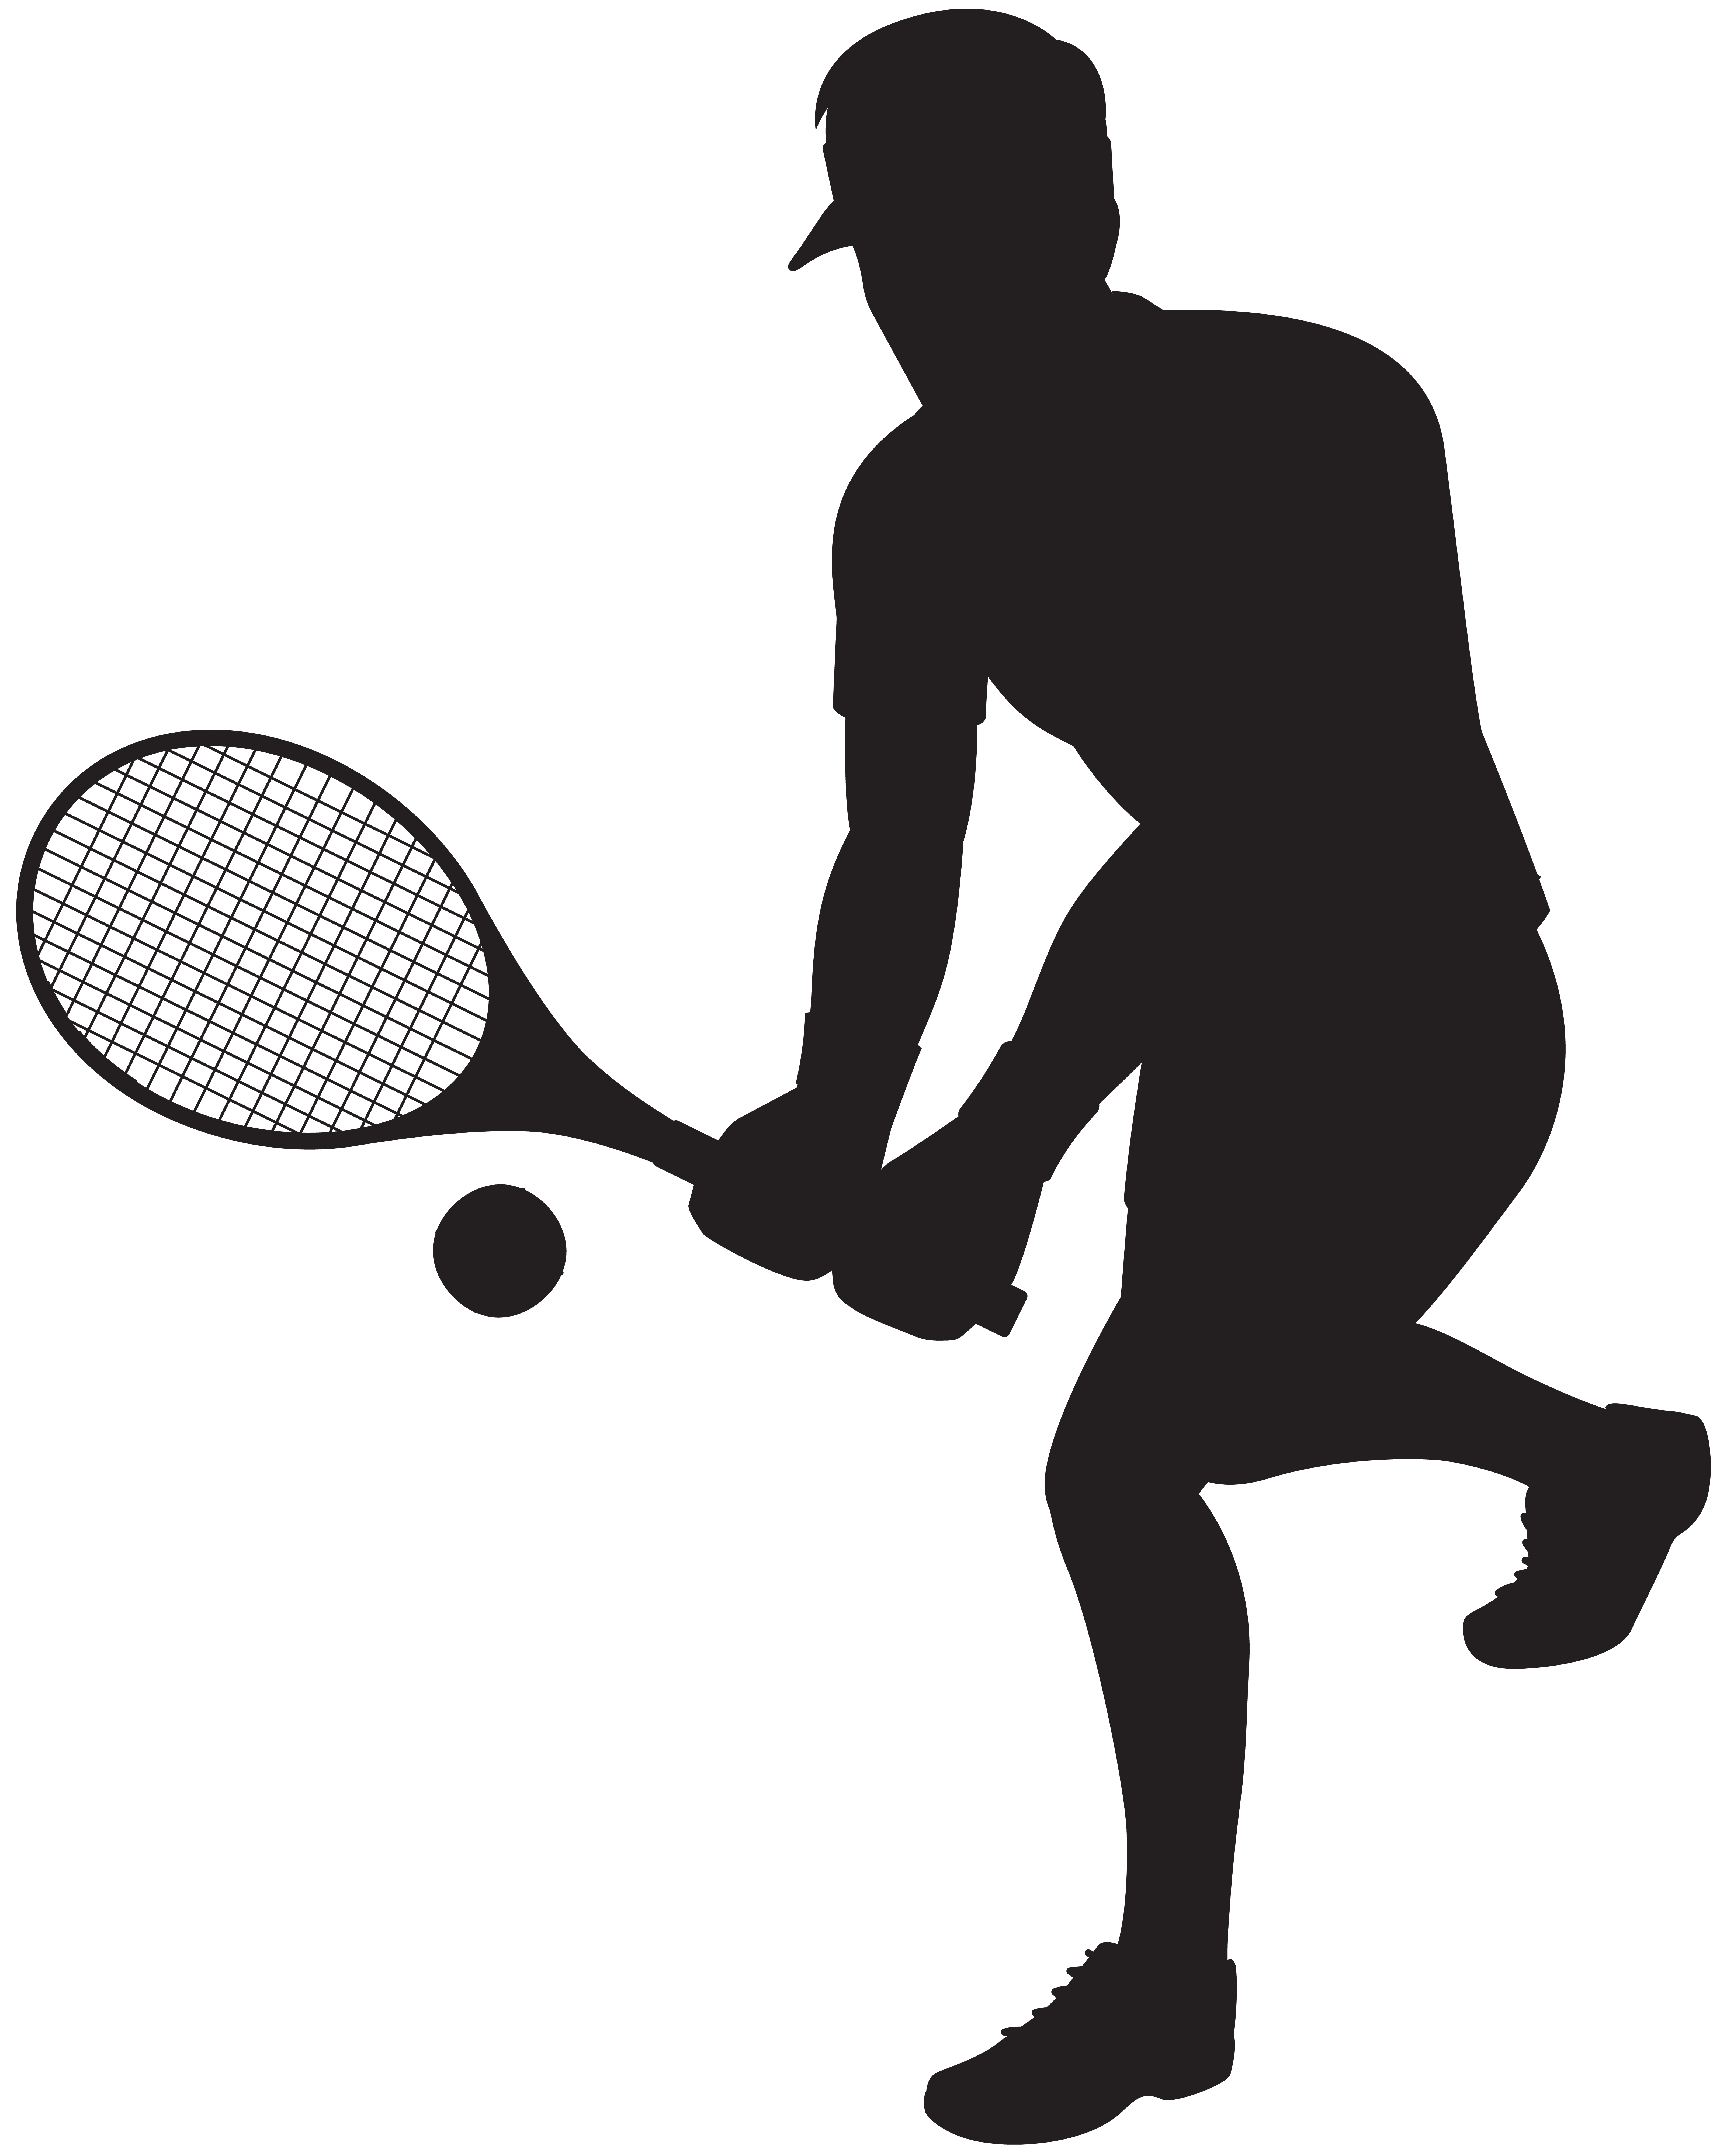 Tennis Player Silhouette Clip Art Image.